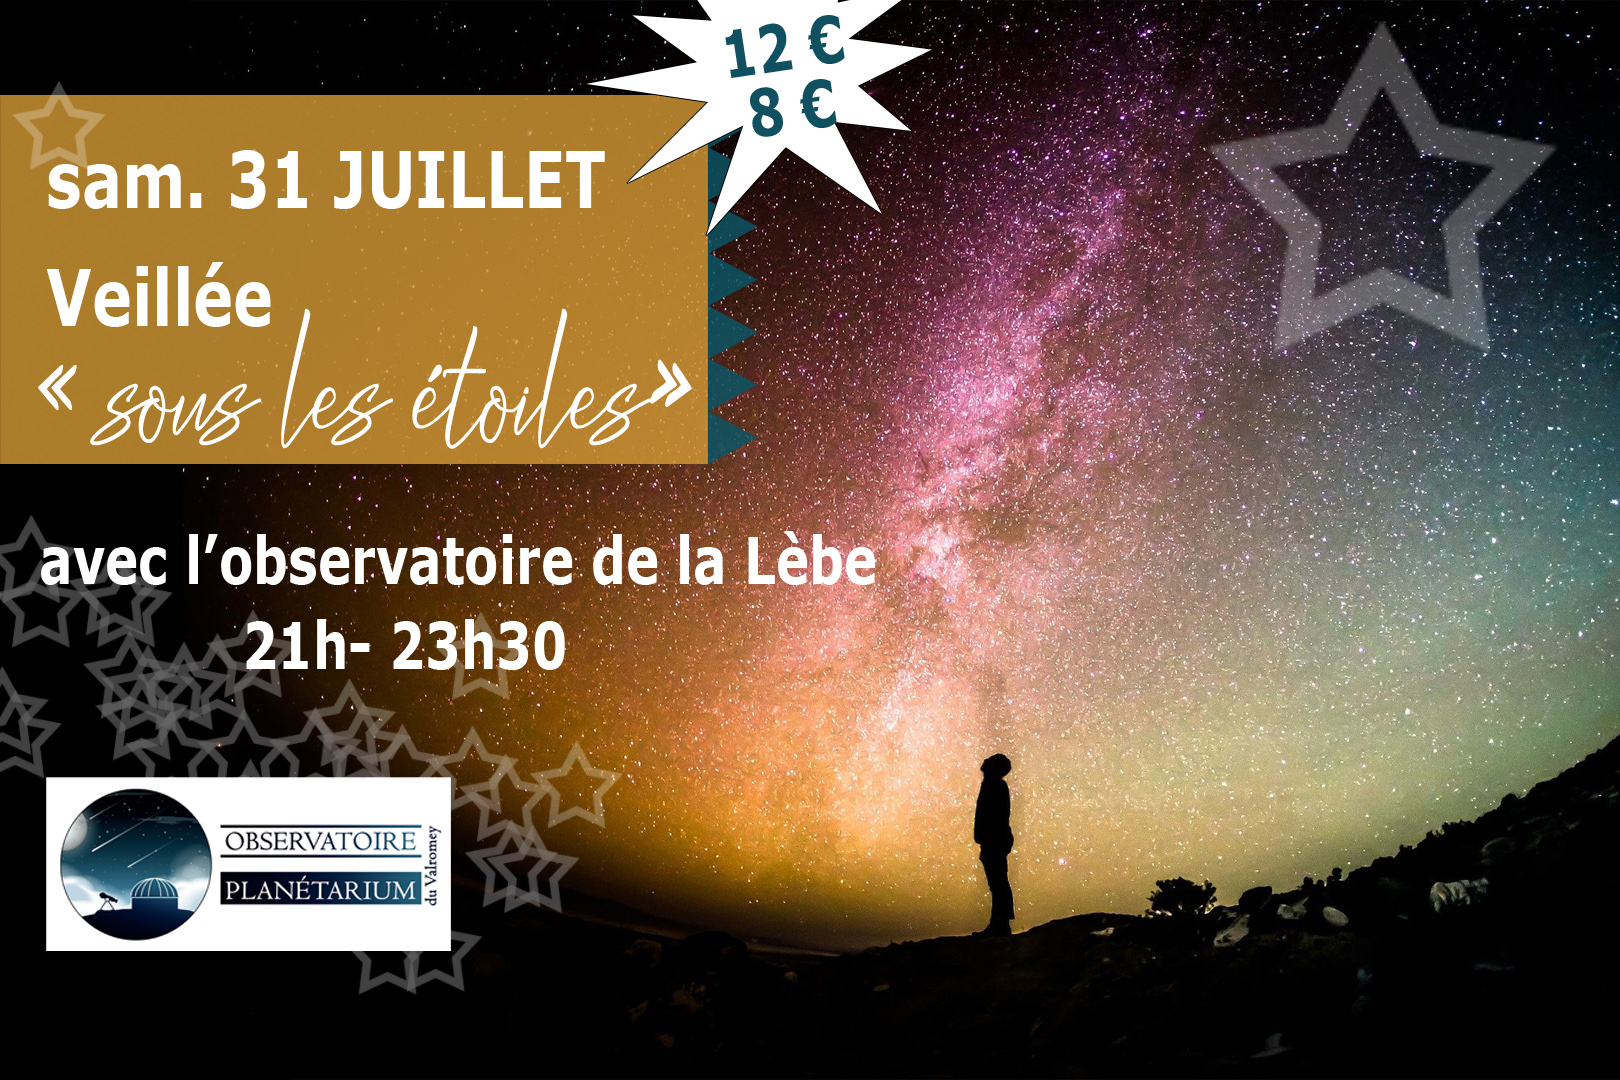 Annonce_veillee